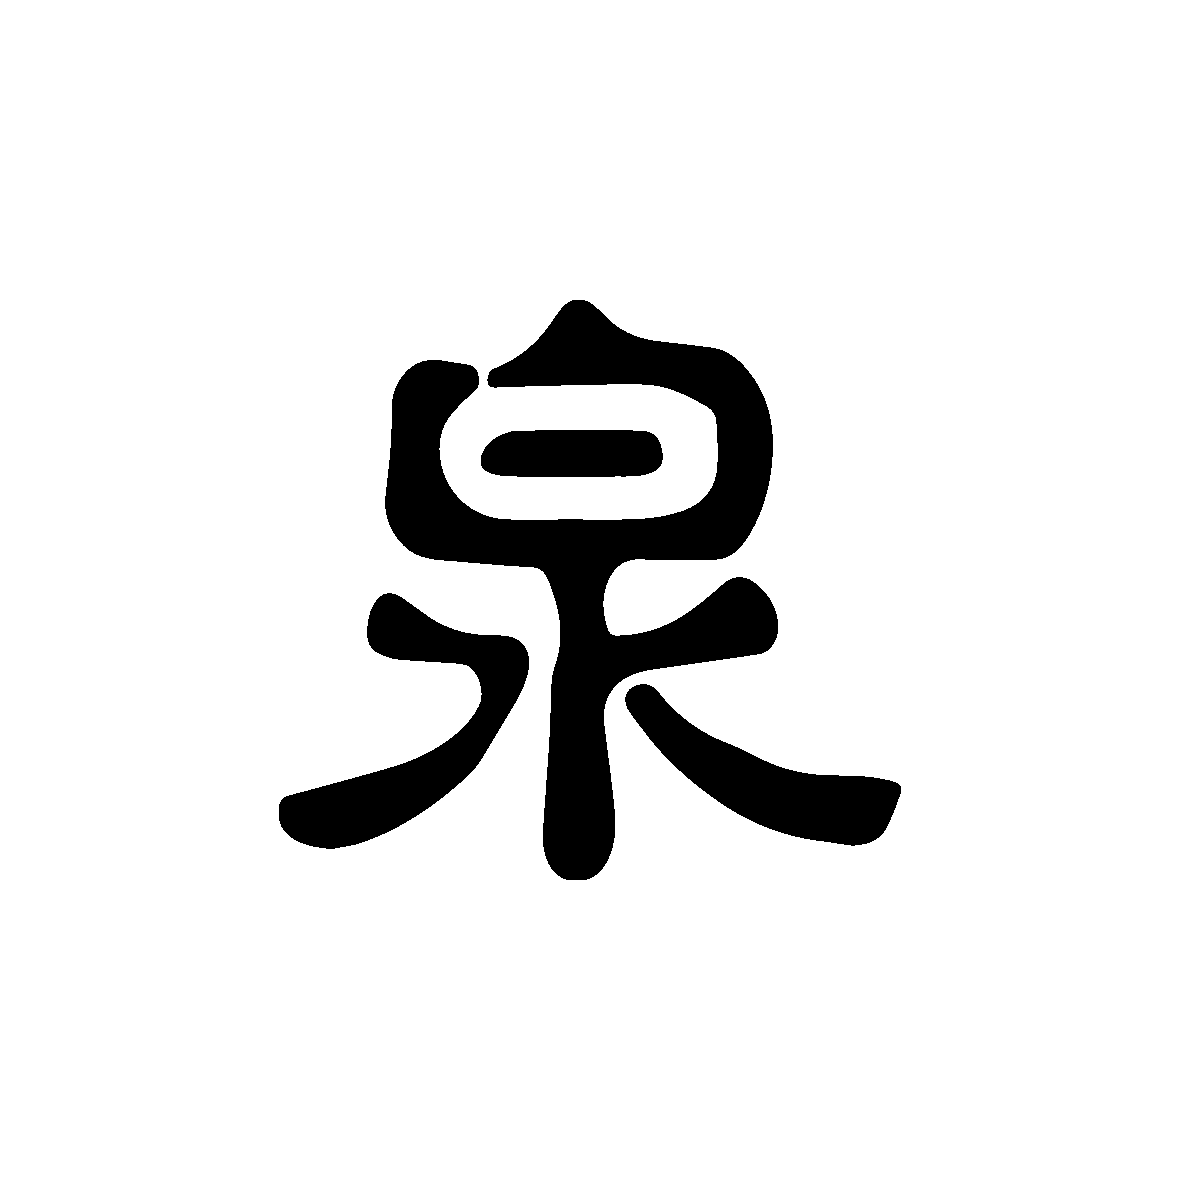 2。1.png